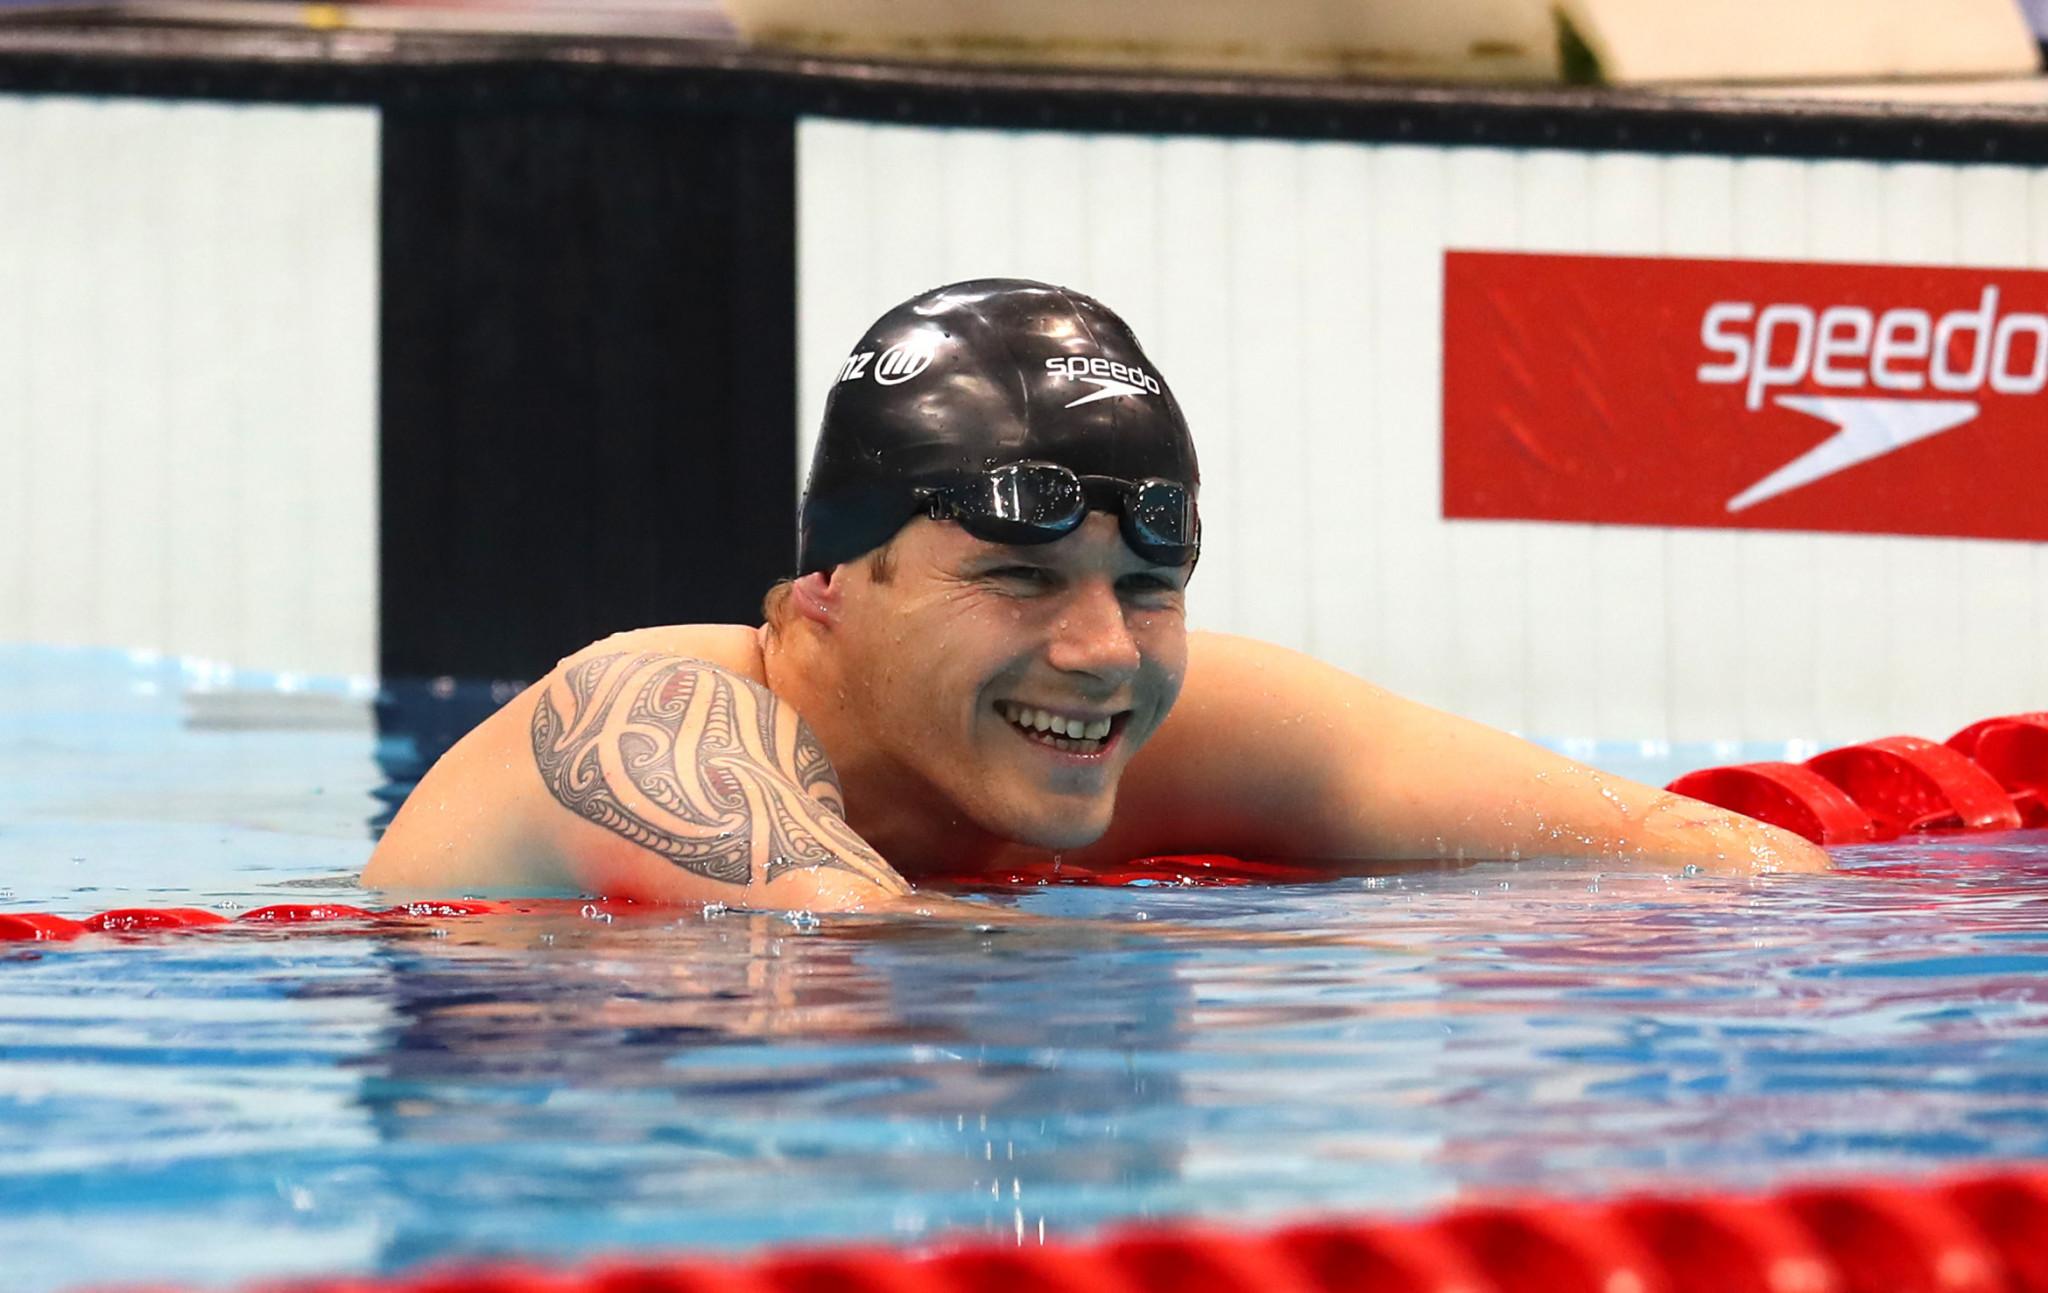 Leslie withdraws from New Zealand swimming and wheelchair rugby teams for Tokyo 2020 over family reasons